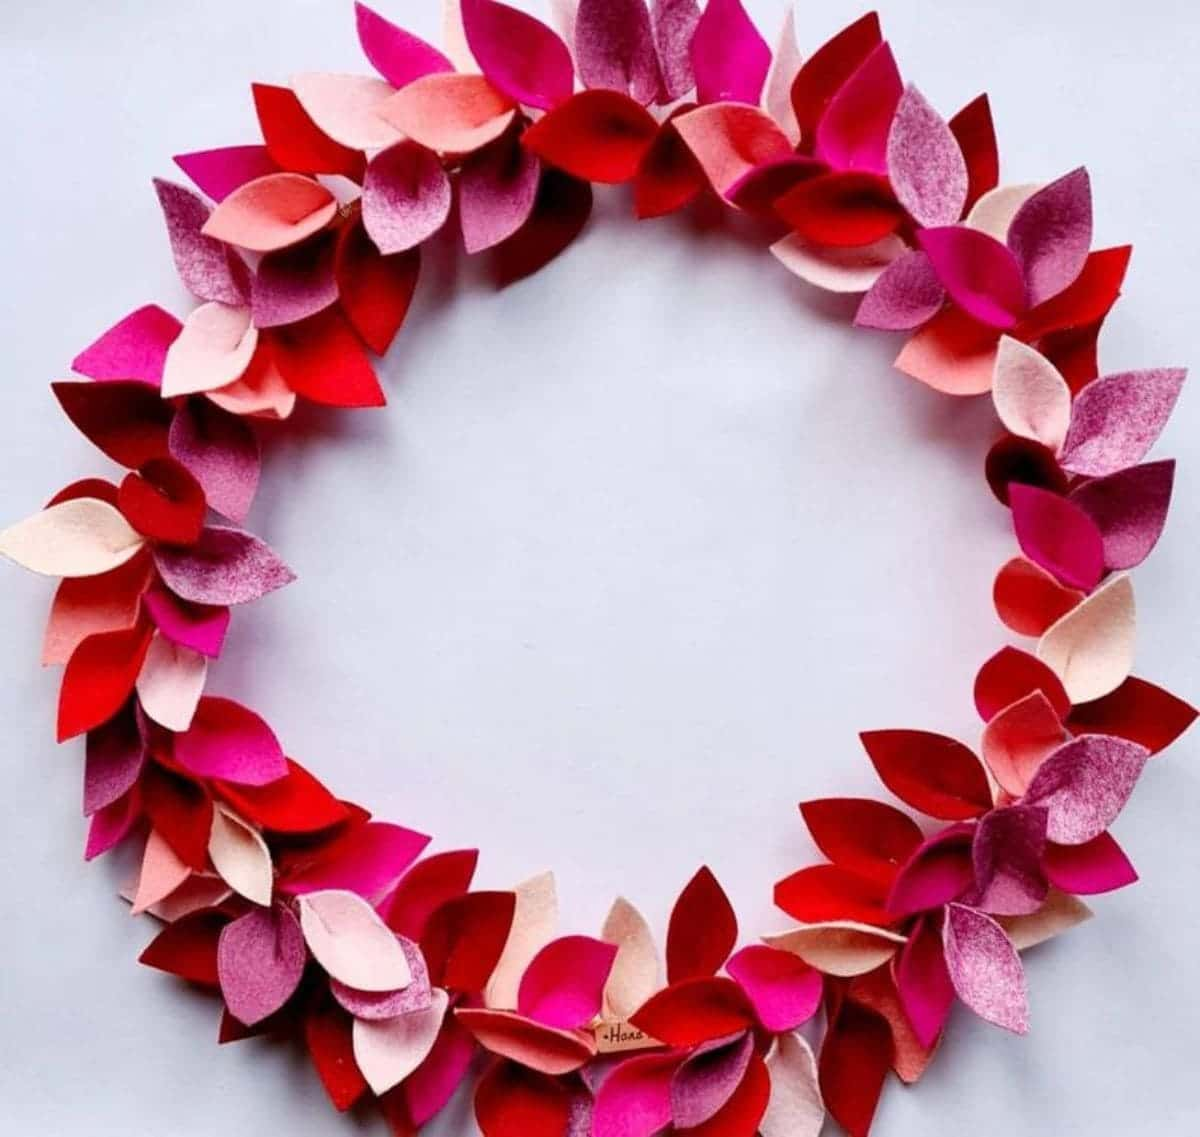 On a white background is a circular wreath made of red, pink and dark pink felt leaves